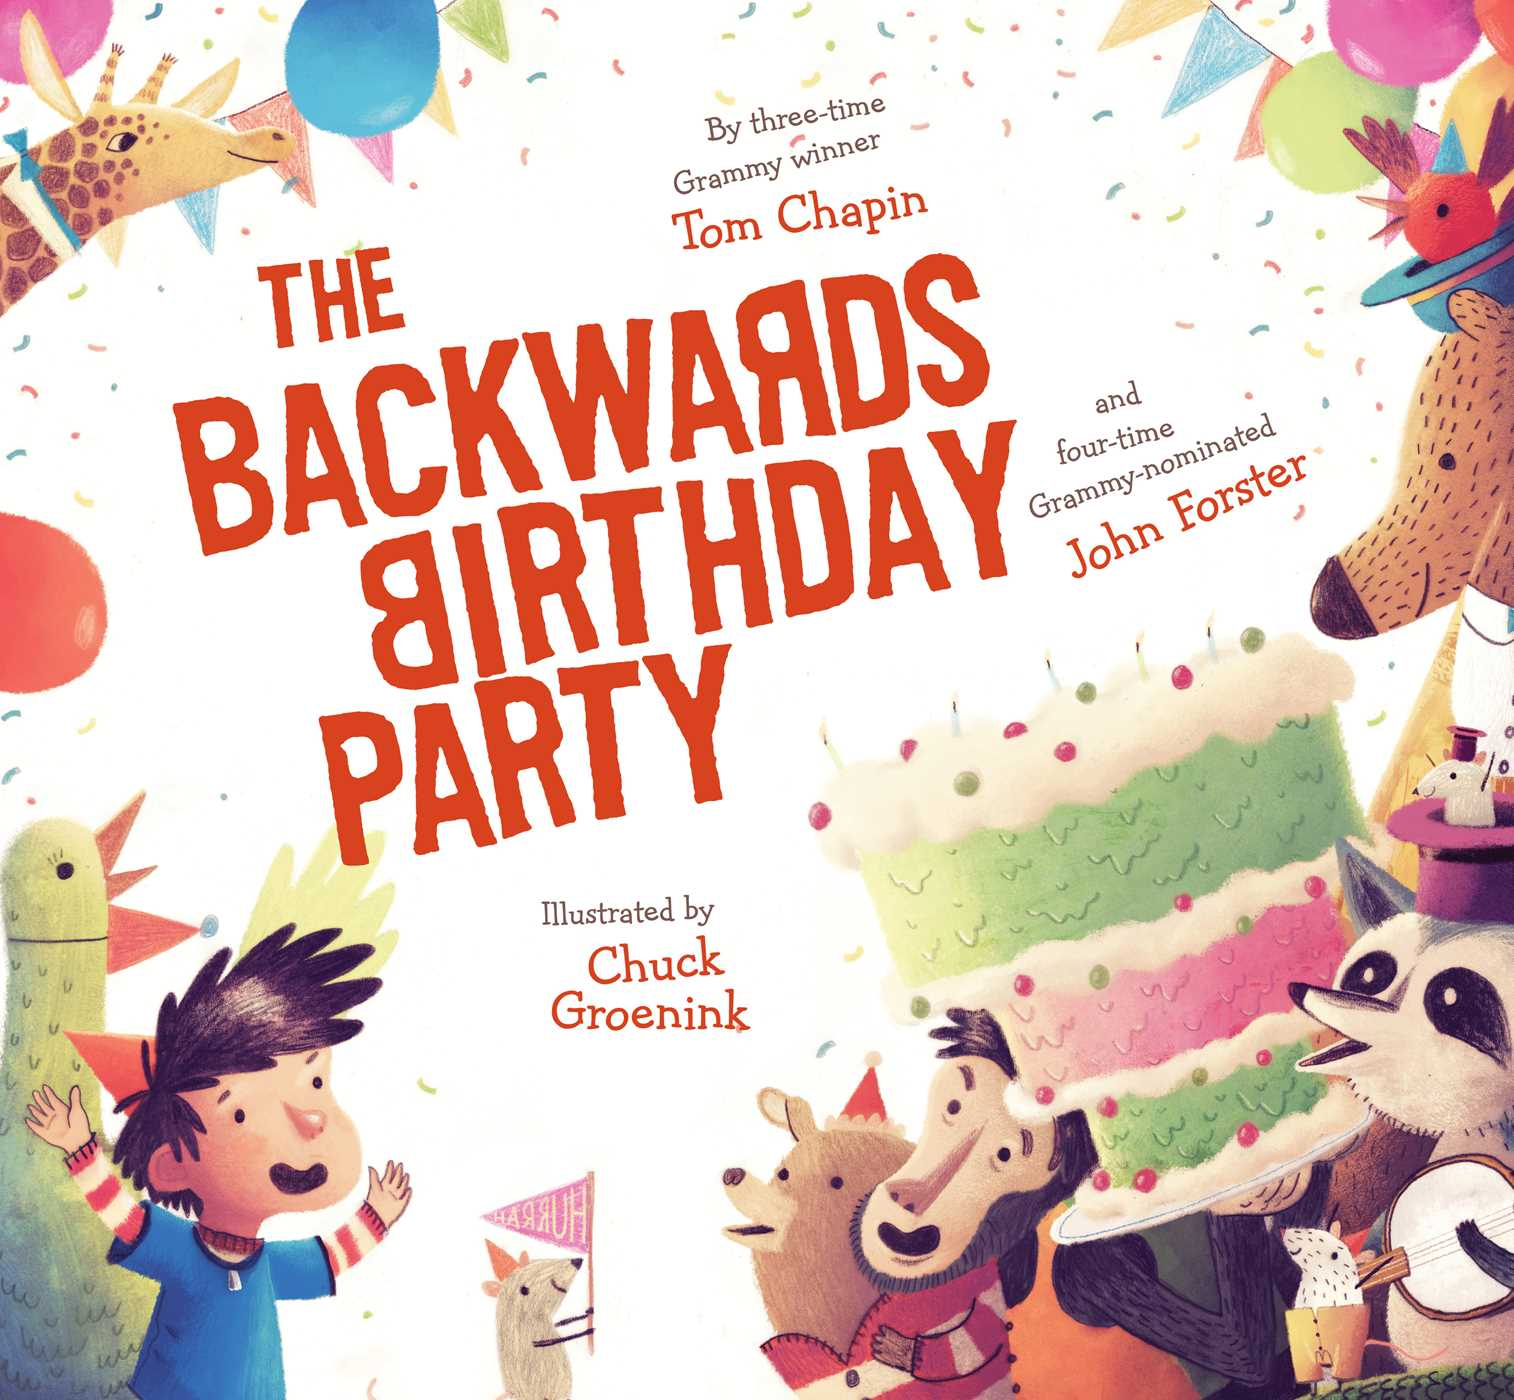 Backward Party